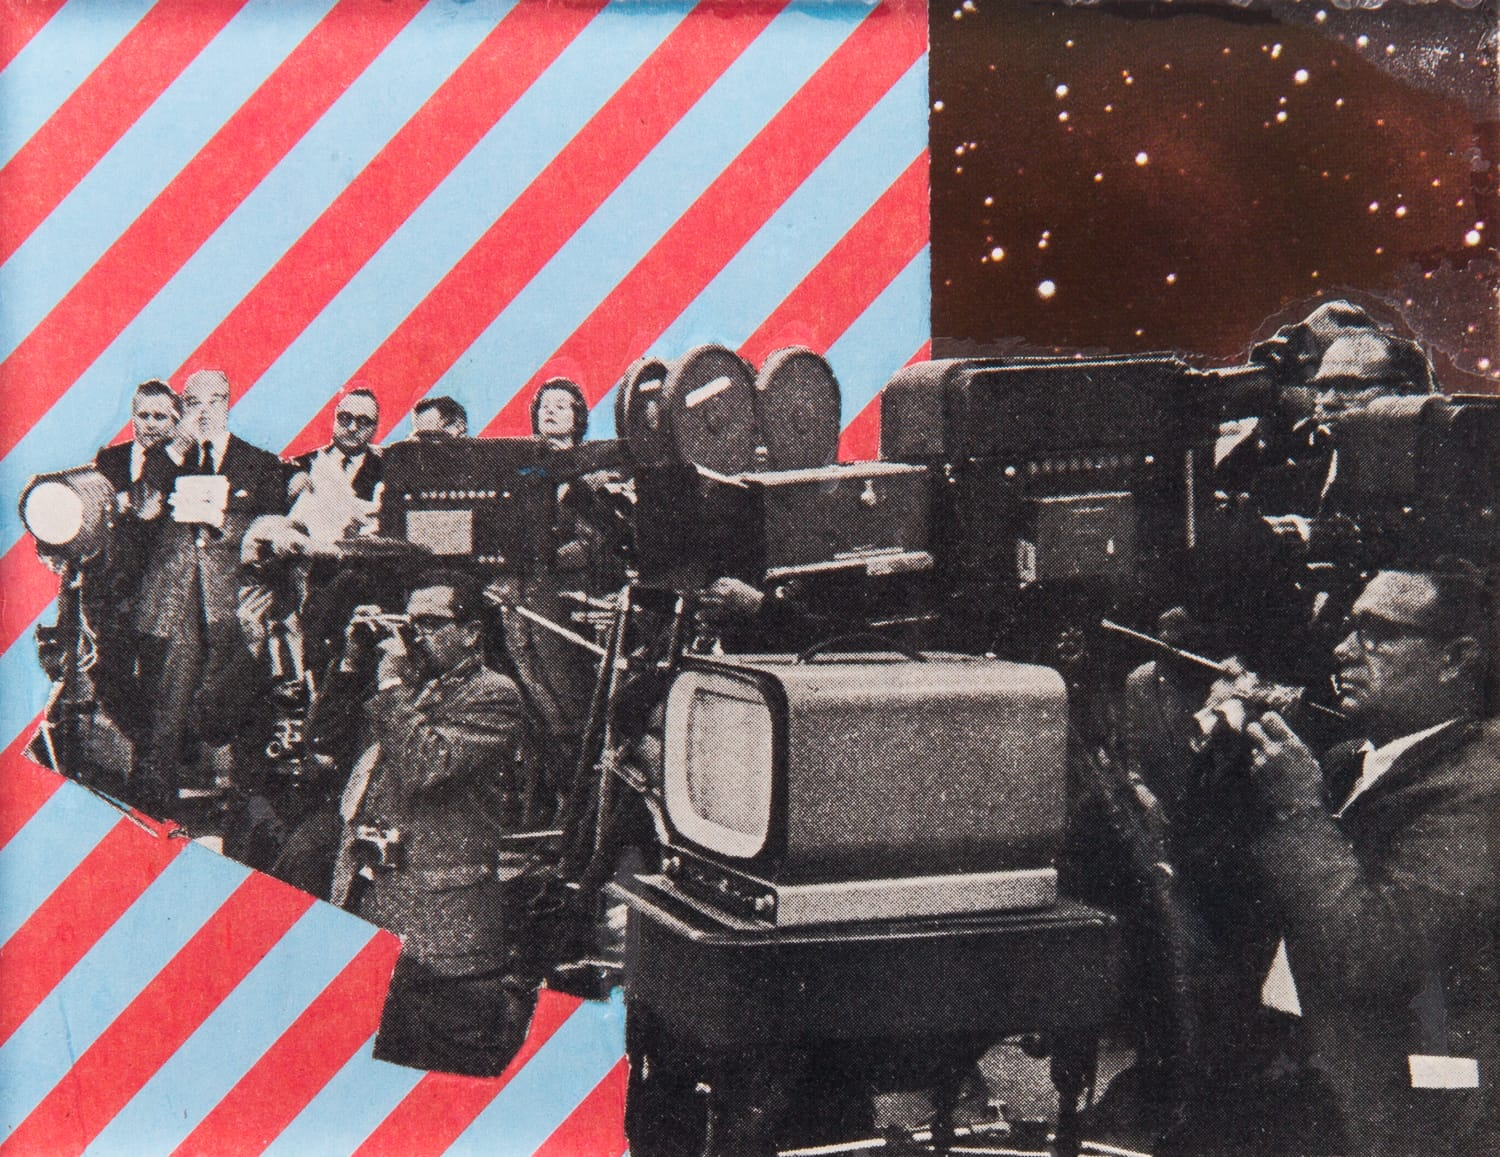 Mass Media. Collage on acrylic, magnet, 12 x 9 cm, 2018